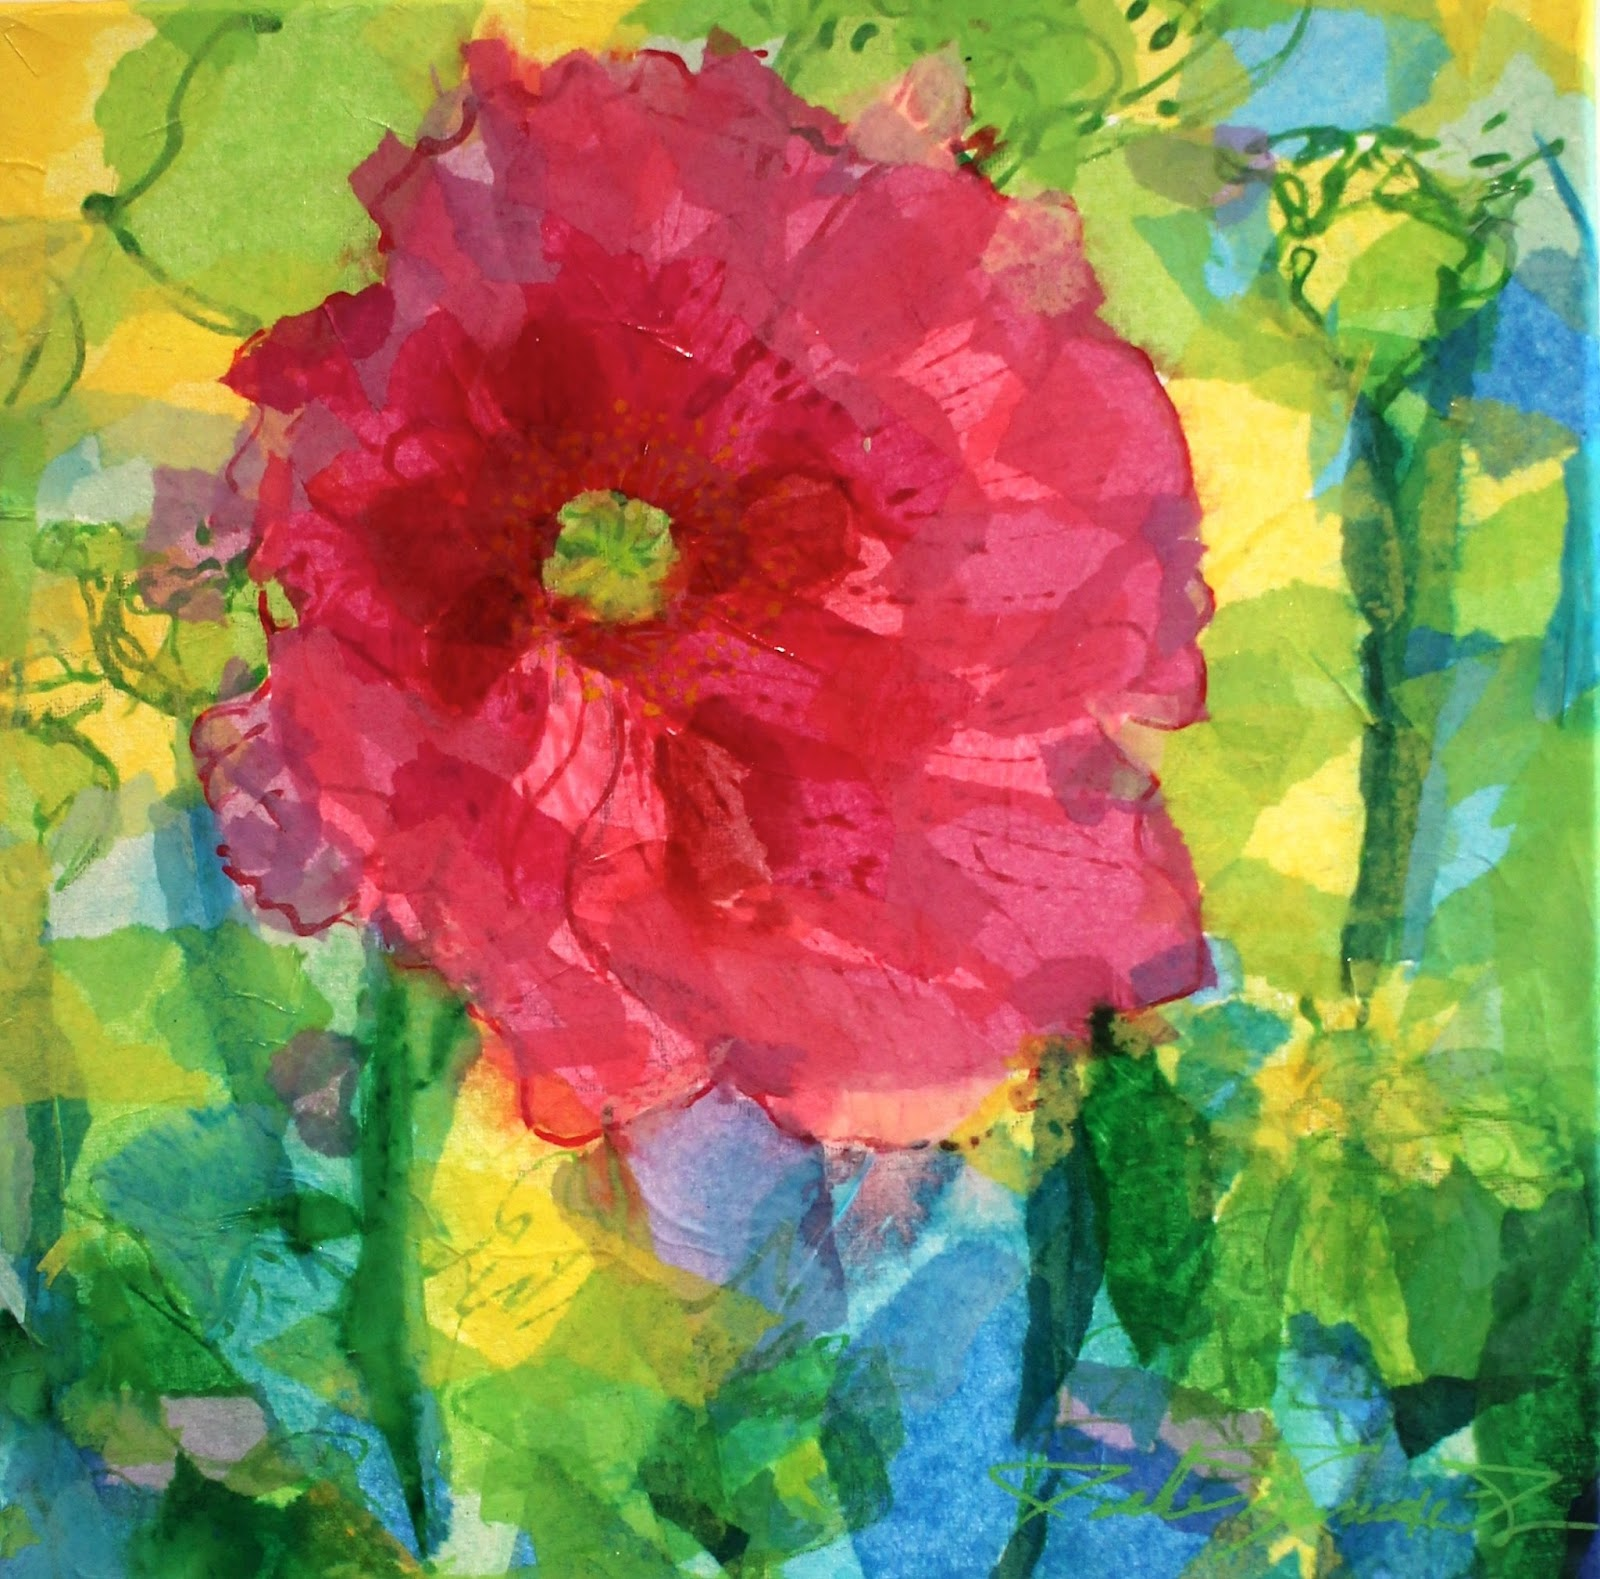 Art 5 Pink Poppy 12 x 12 mixed.JPG